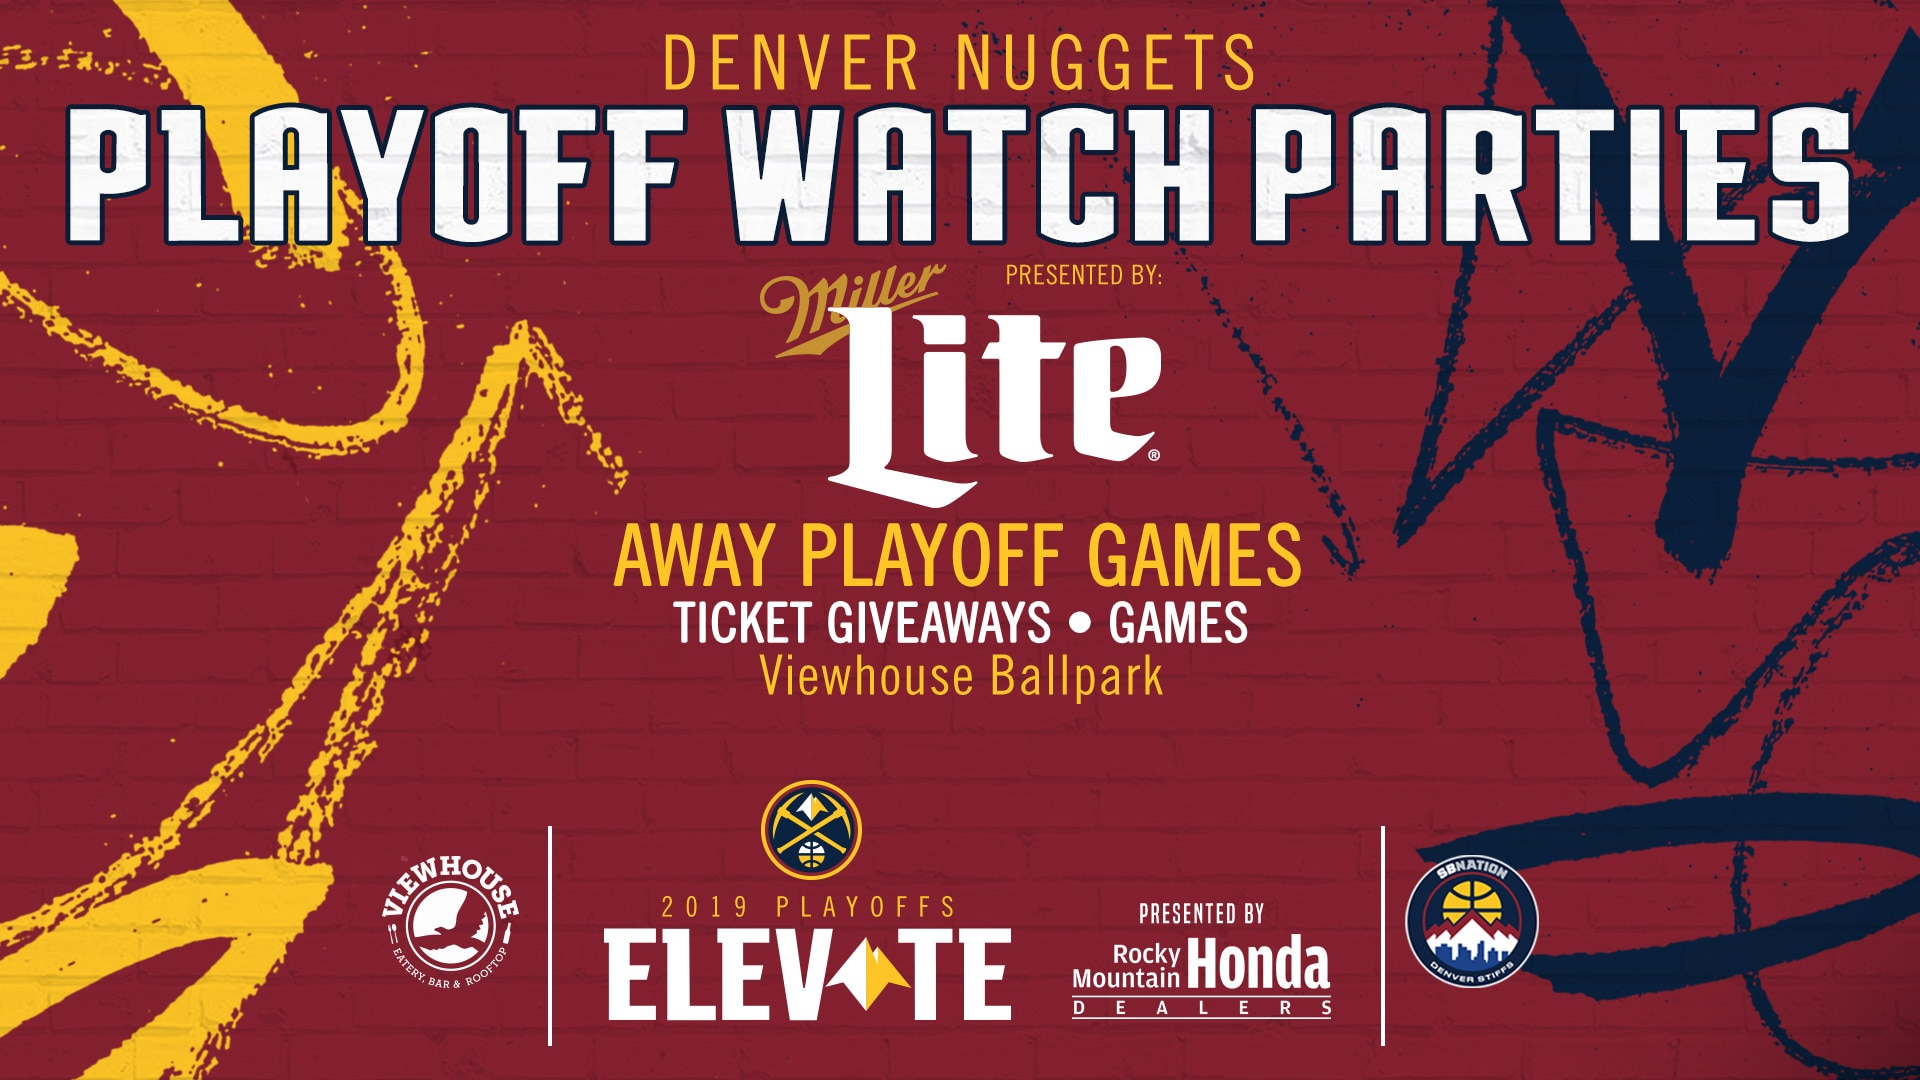 Playoff Watch Party